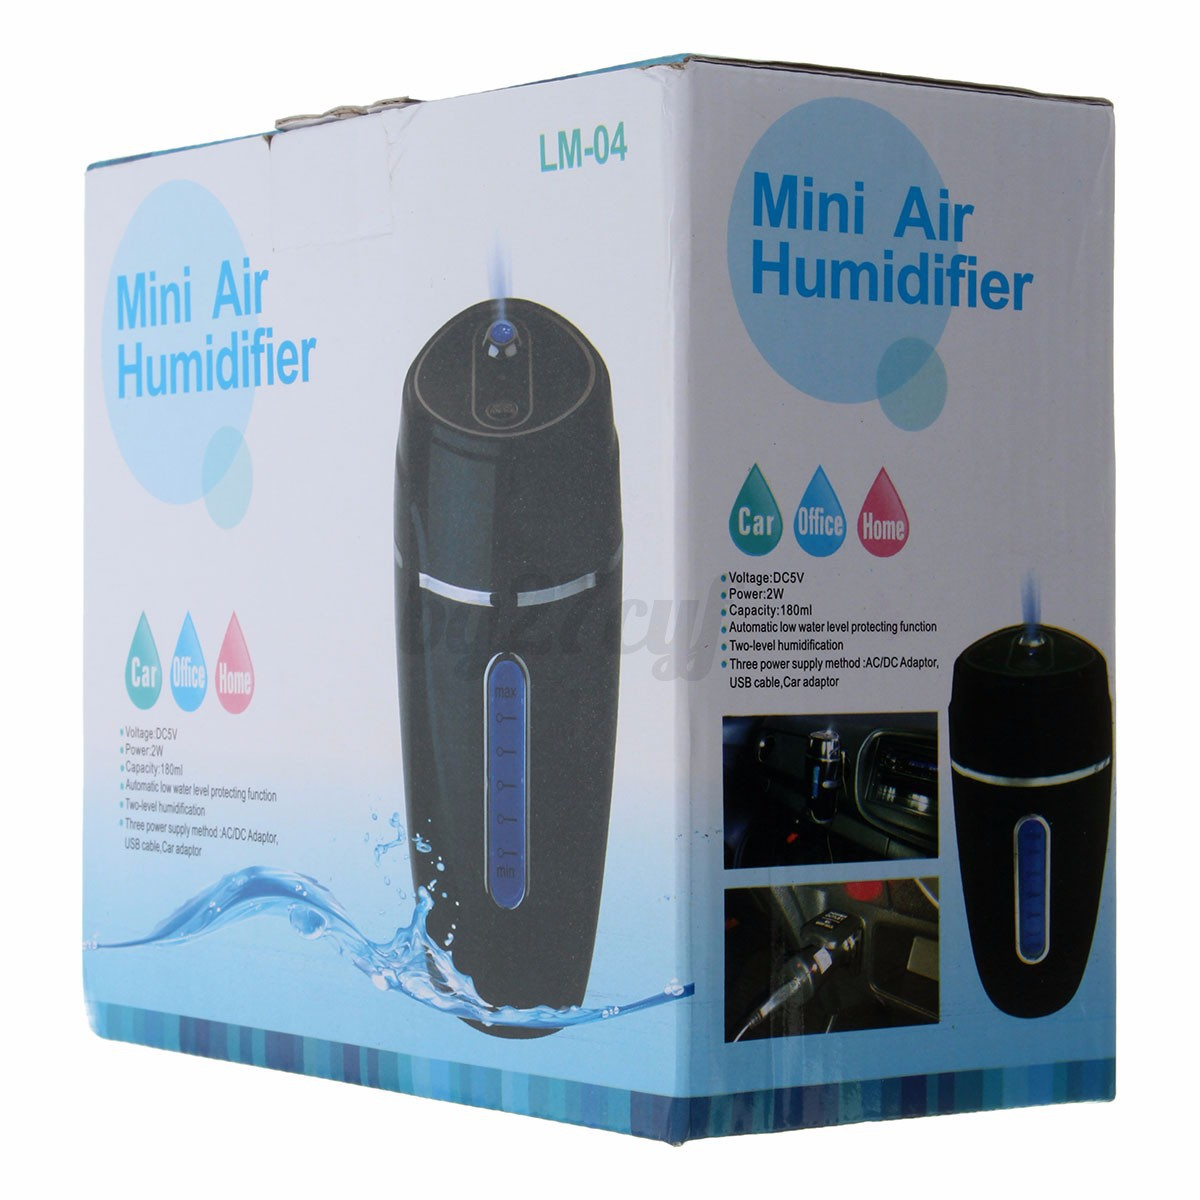 Kit Air Purifier Freshener Auto USB LED Humidifier Purifier Diffuser #2973A2